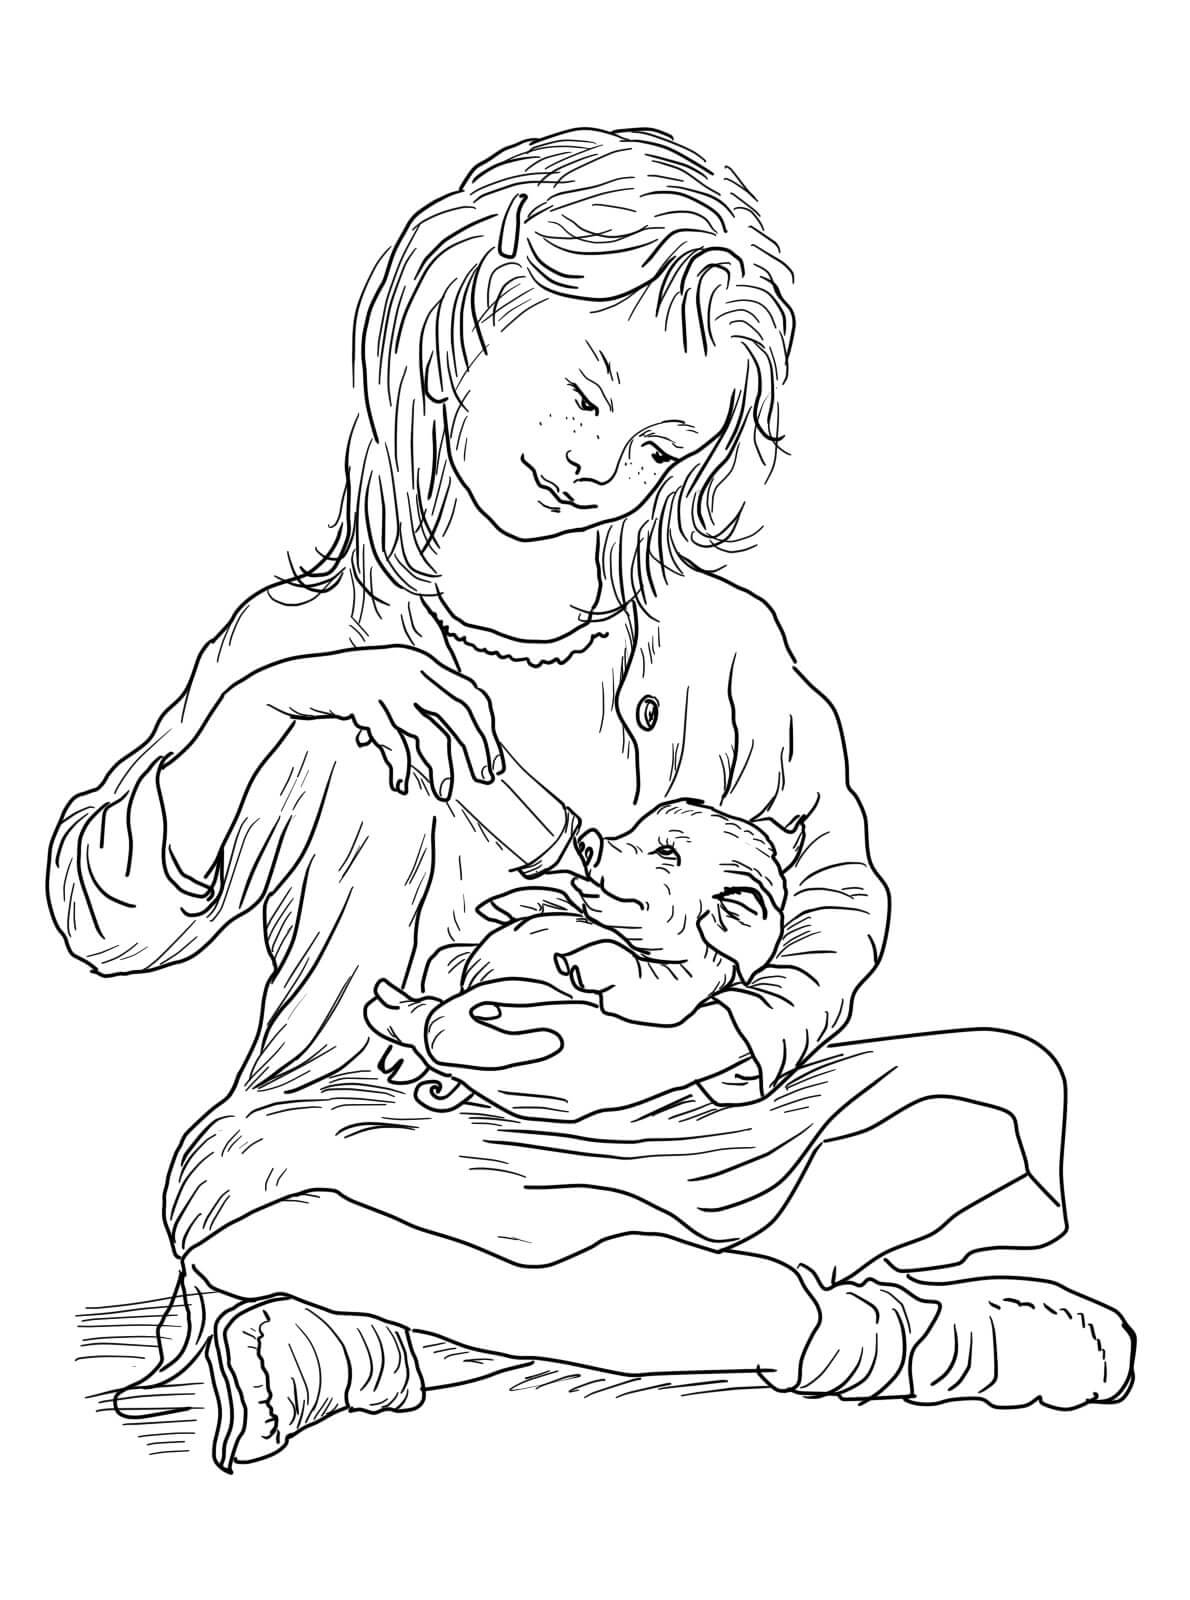 fern feeding wilbur coloring pages